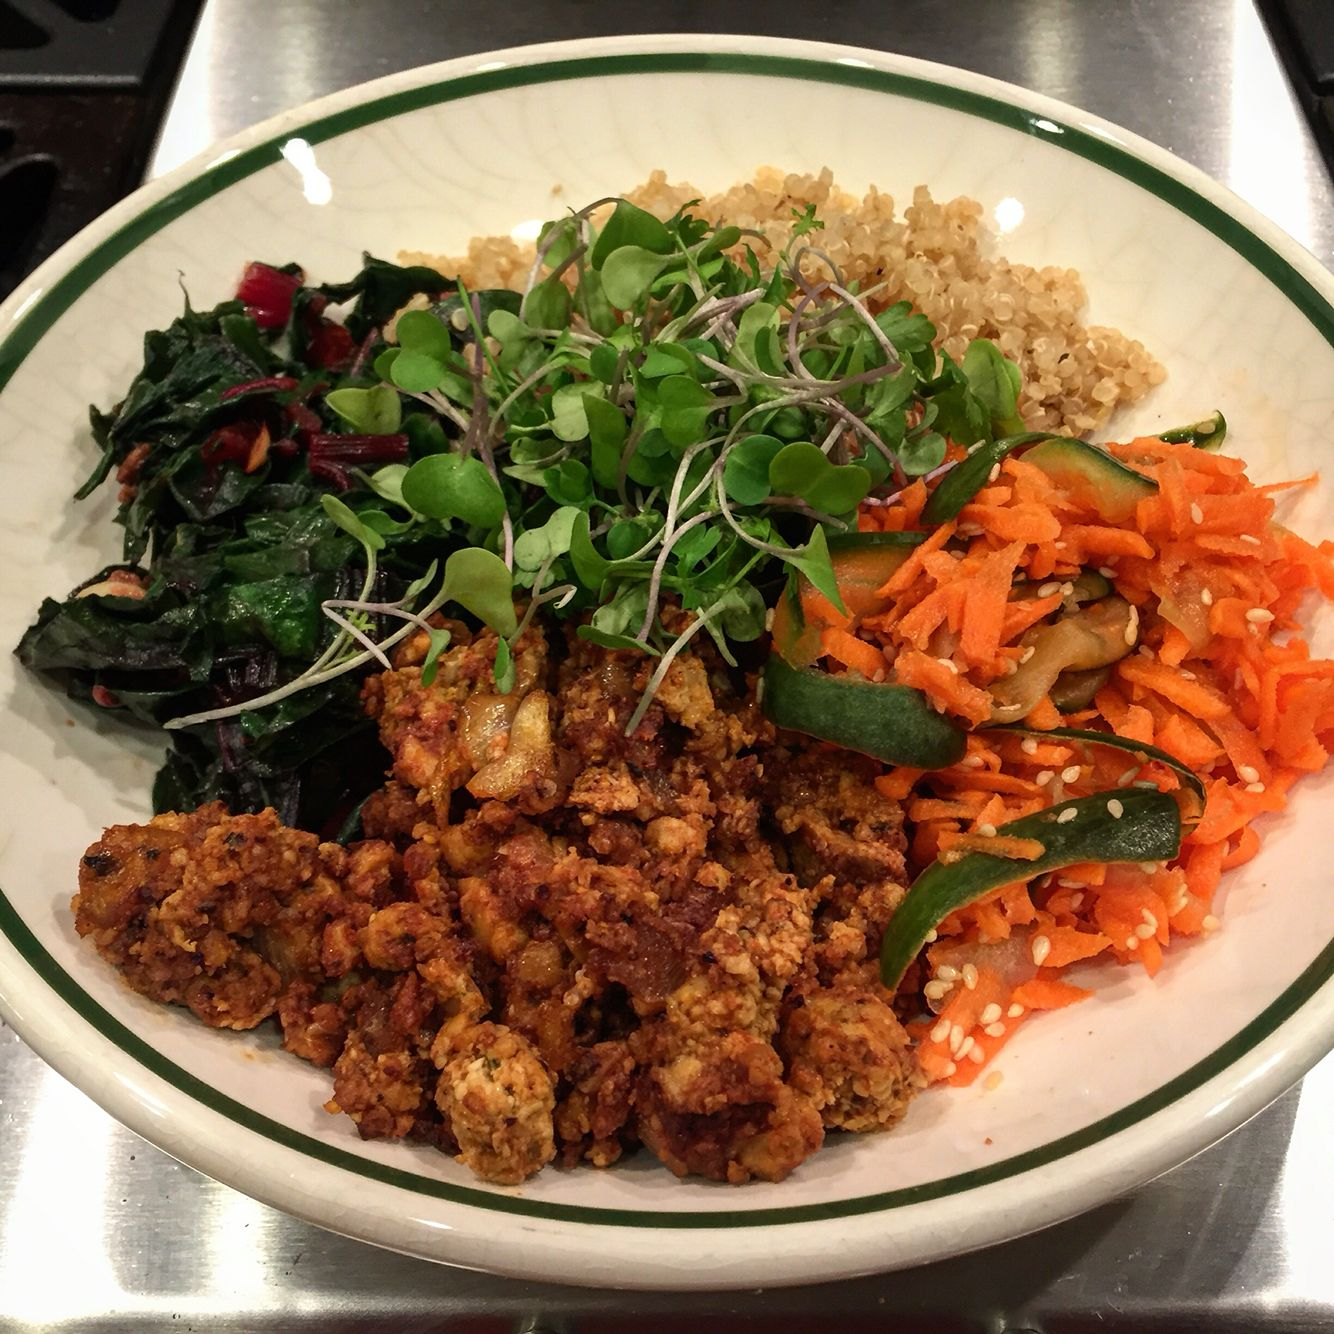 Rainbow Bowl - Bbqed Hemp, Pickled Carrots & Cucumbers, Quinoa & Garlicky Red Chard with Microgreens